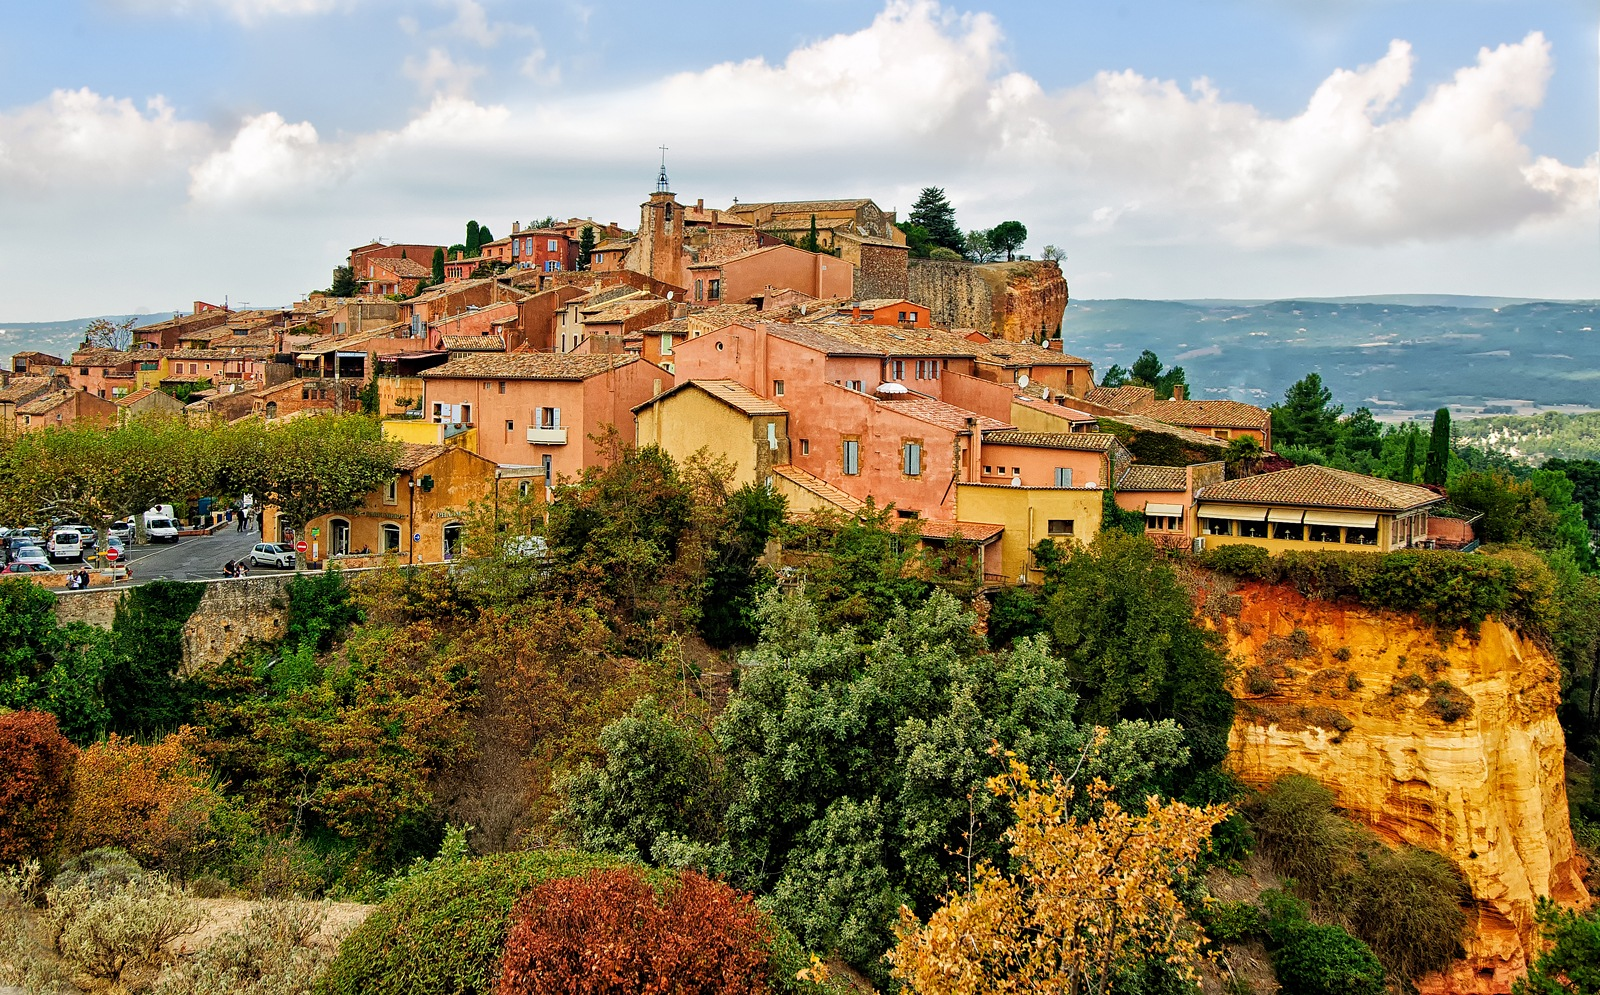 Roussillon in Autumn by Philip Haber